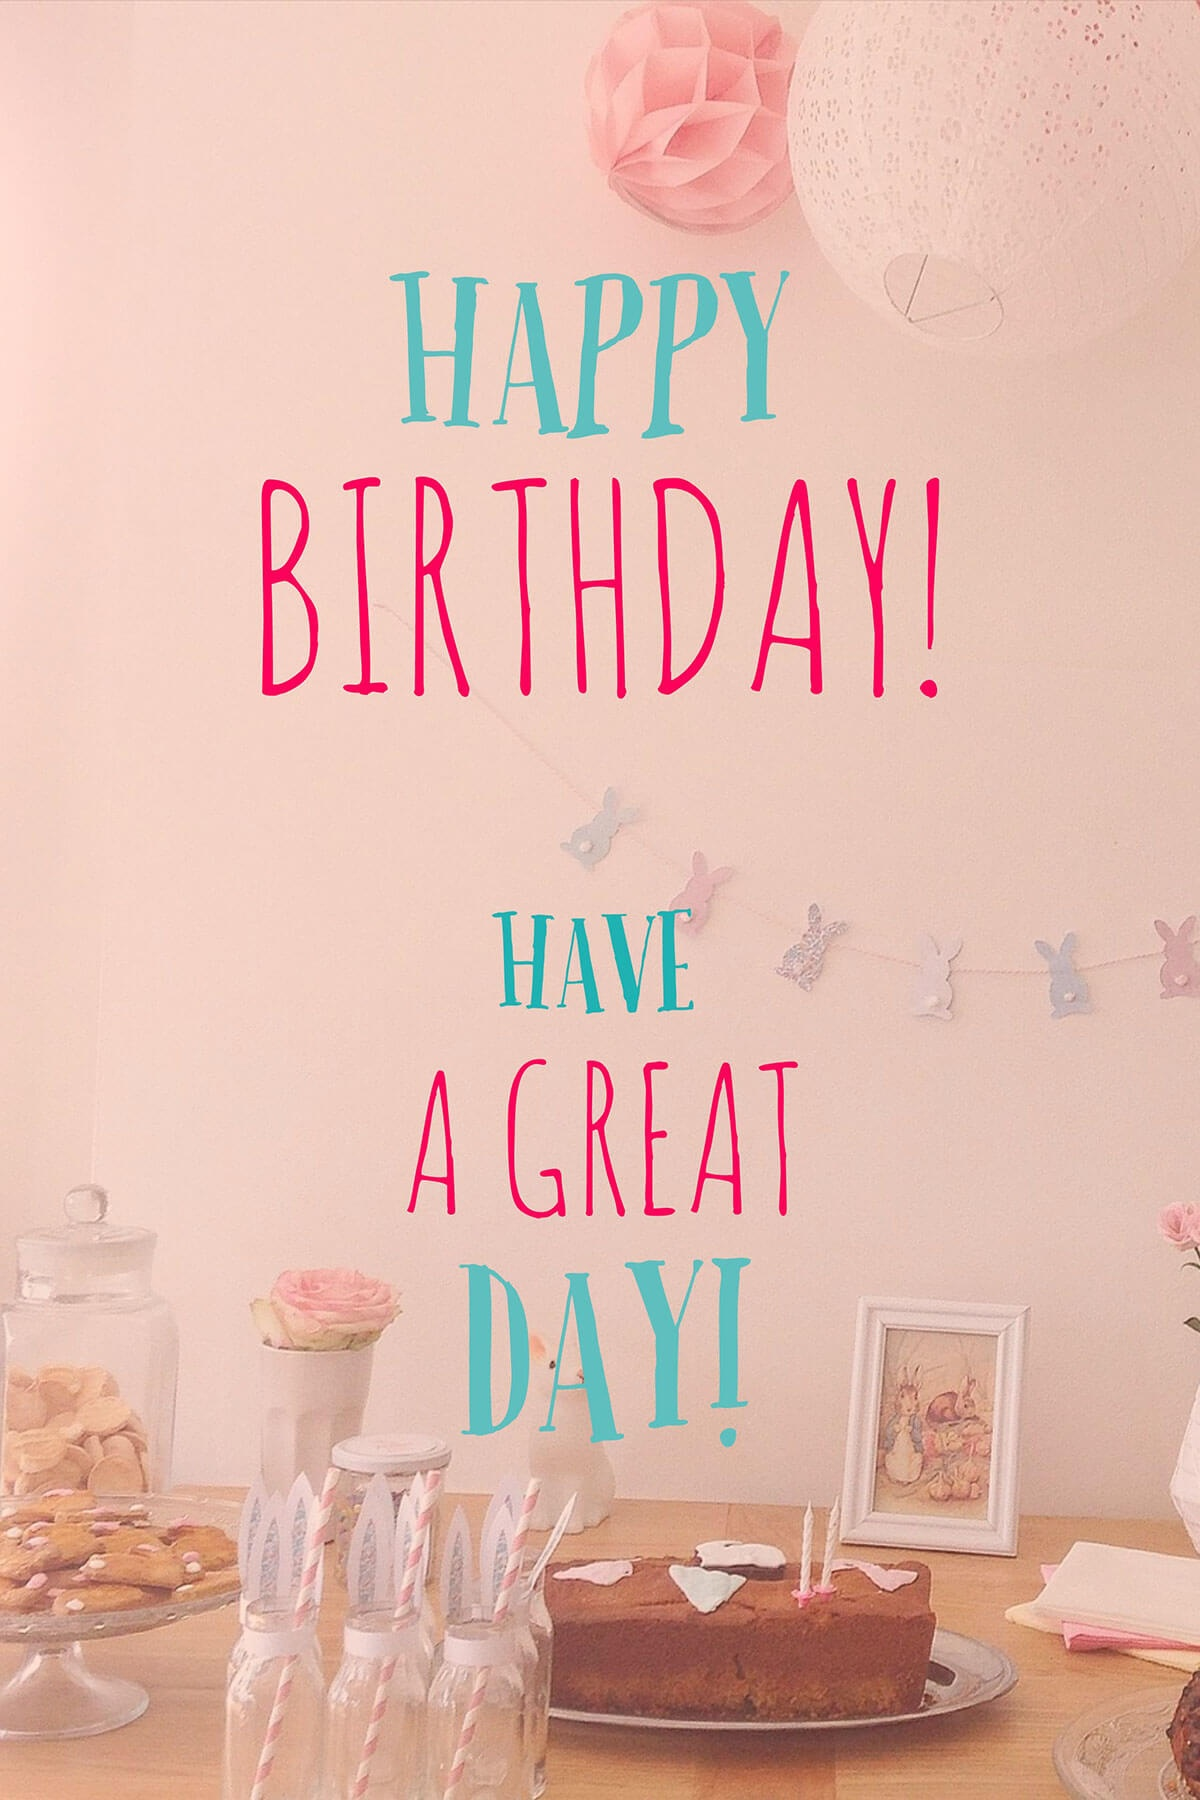 Birthday Card Generator Printable Free - Tutlin.psstech.co - Free Printable Card Maker